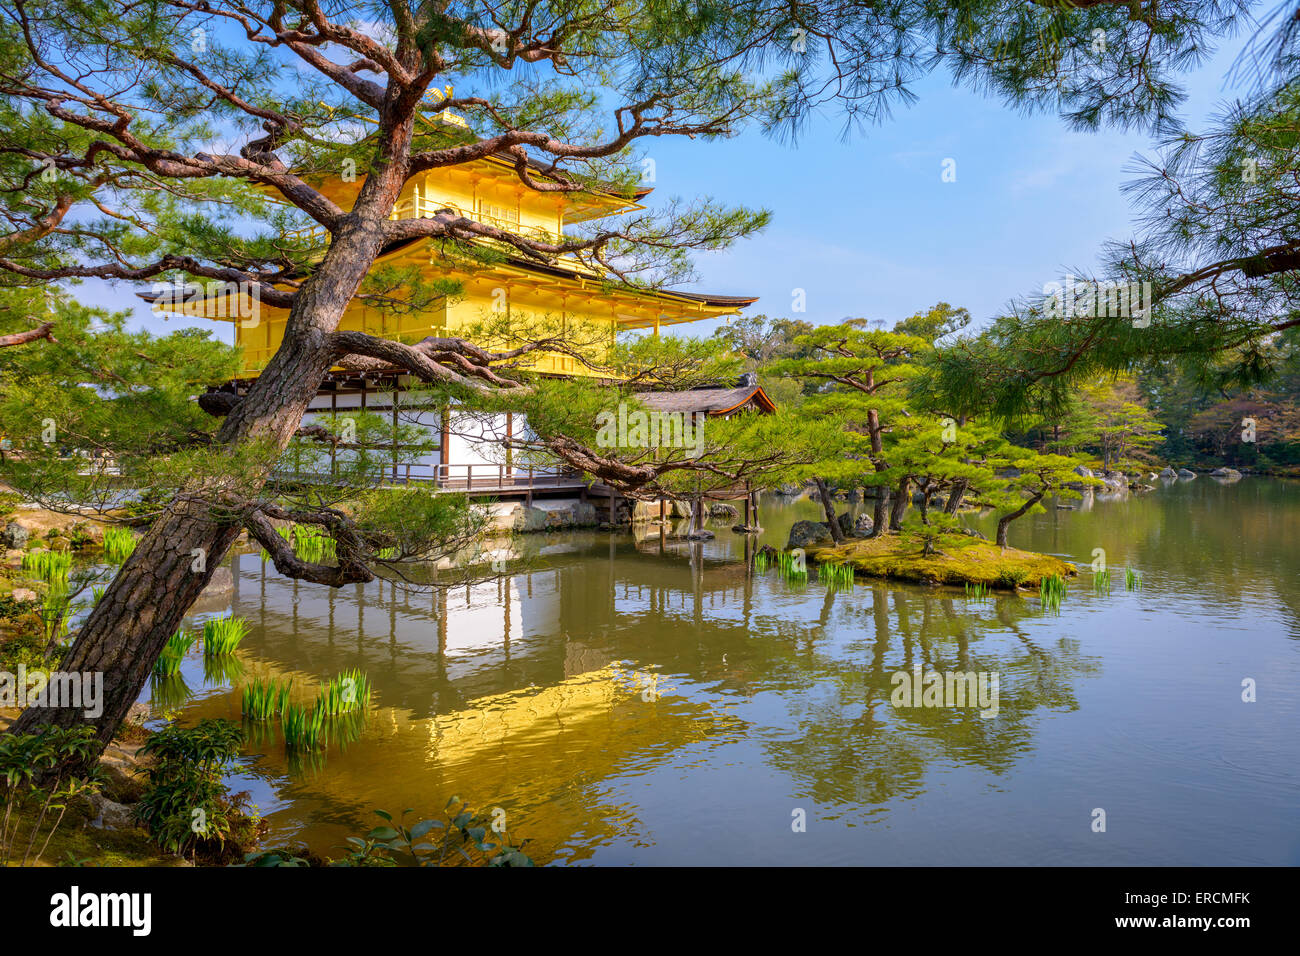 Kyoto, Japan at the Temple of the Golden Pavilion. - Stock Image